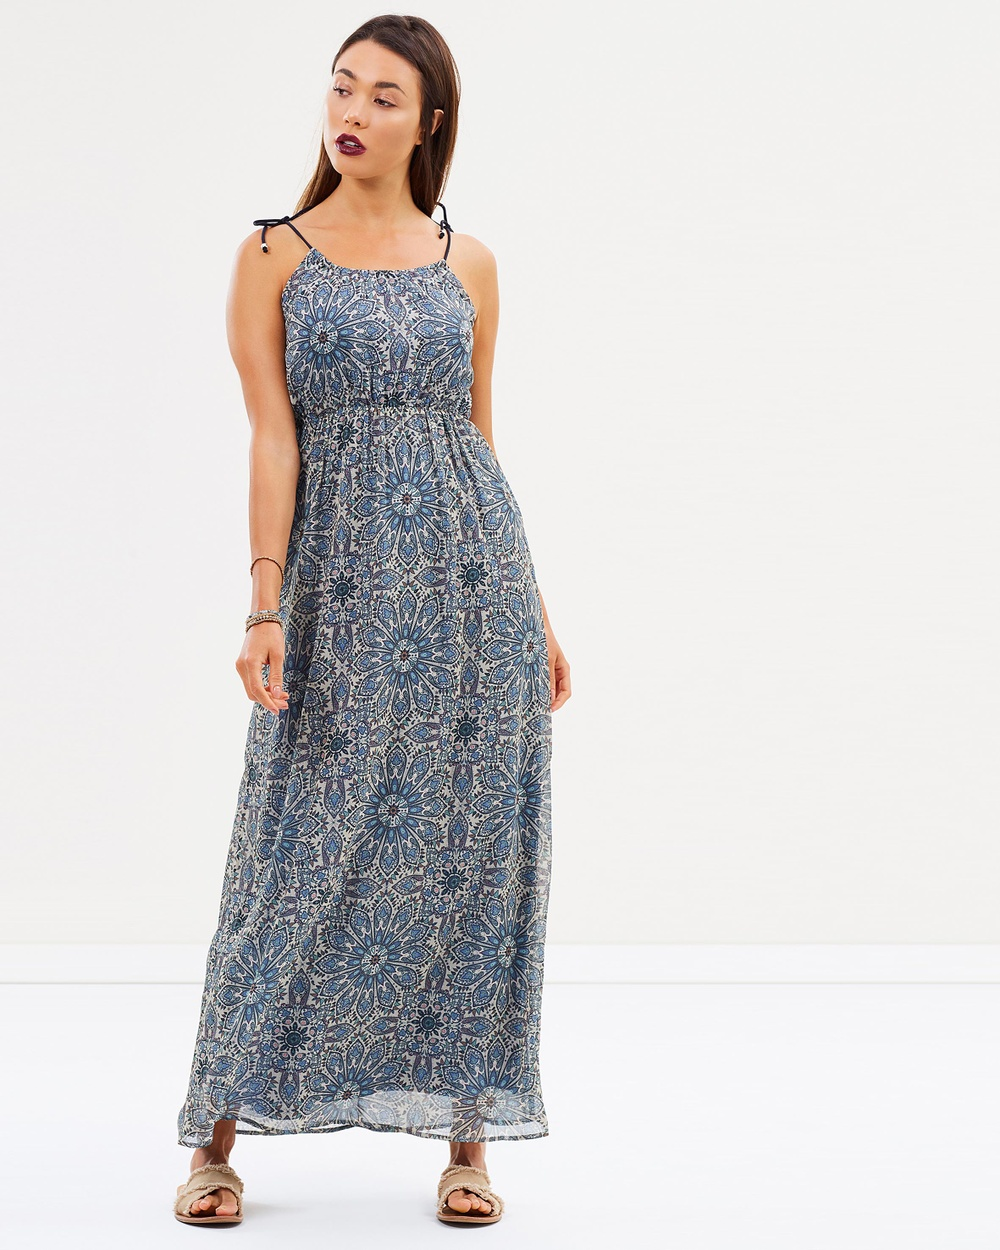 ONLY Laura Woven Maxi Dress Printed Dresses Peyote Laura Woven Maxi Dress